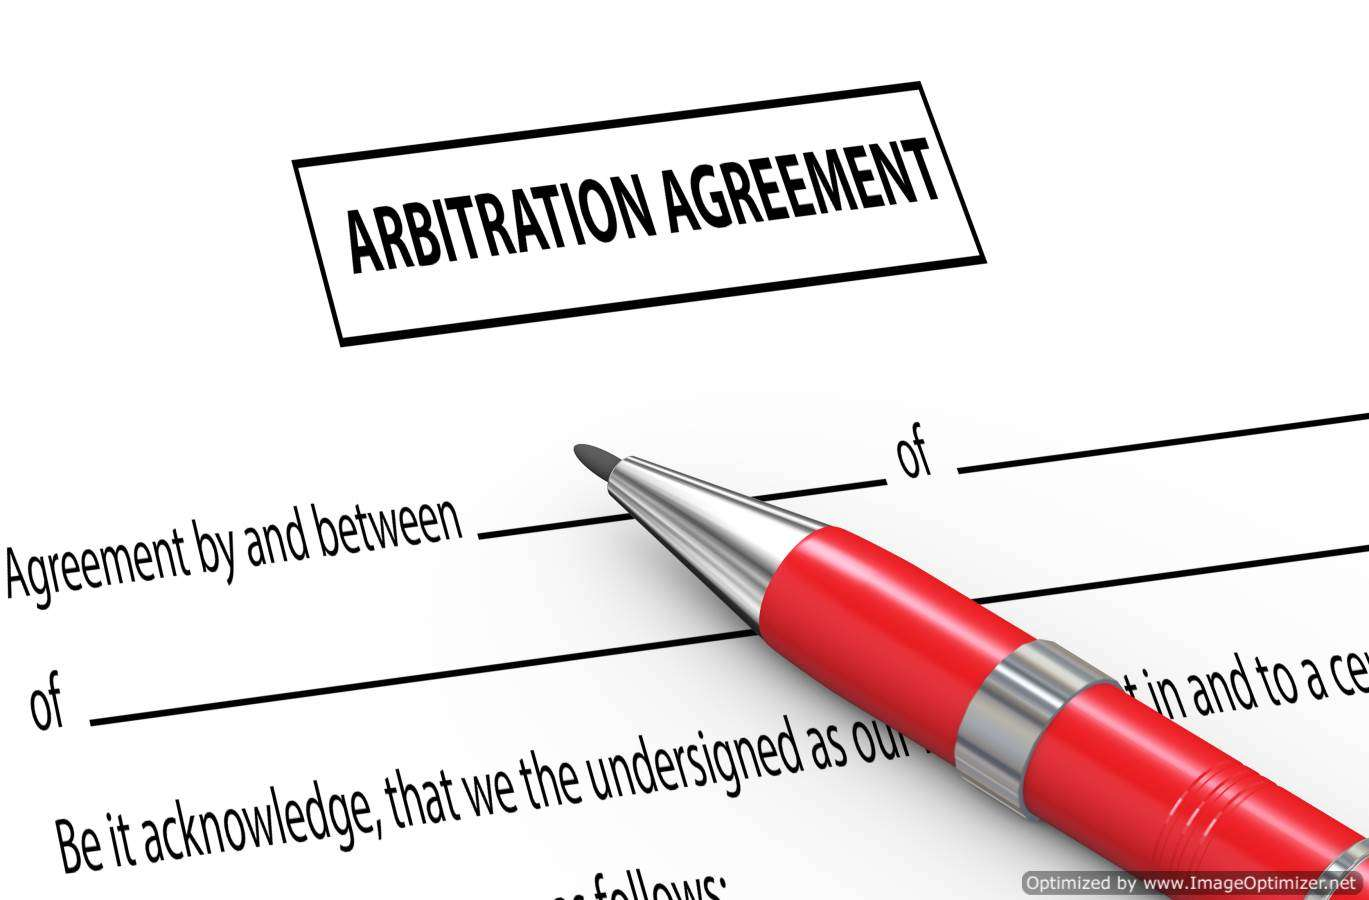 Make Sure Your Arbitration Agreement is Enforceable